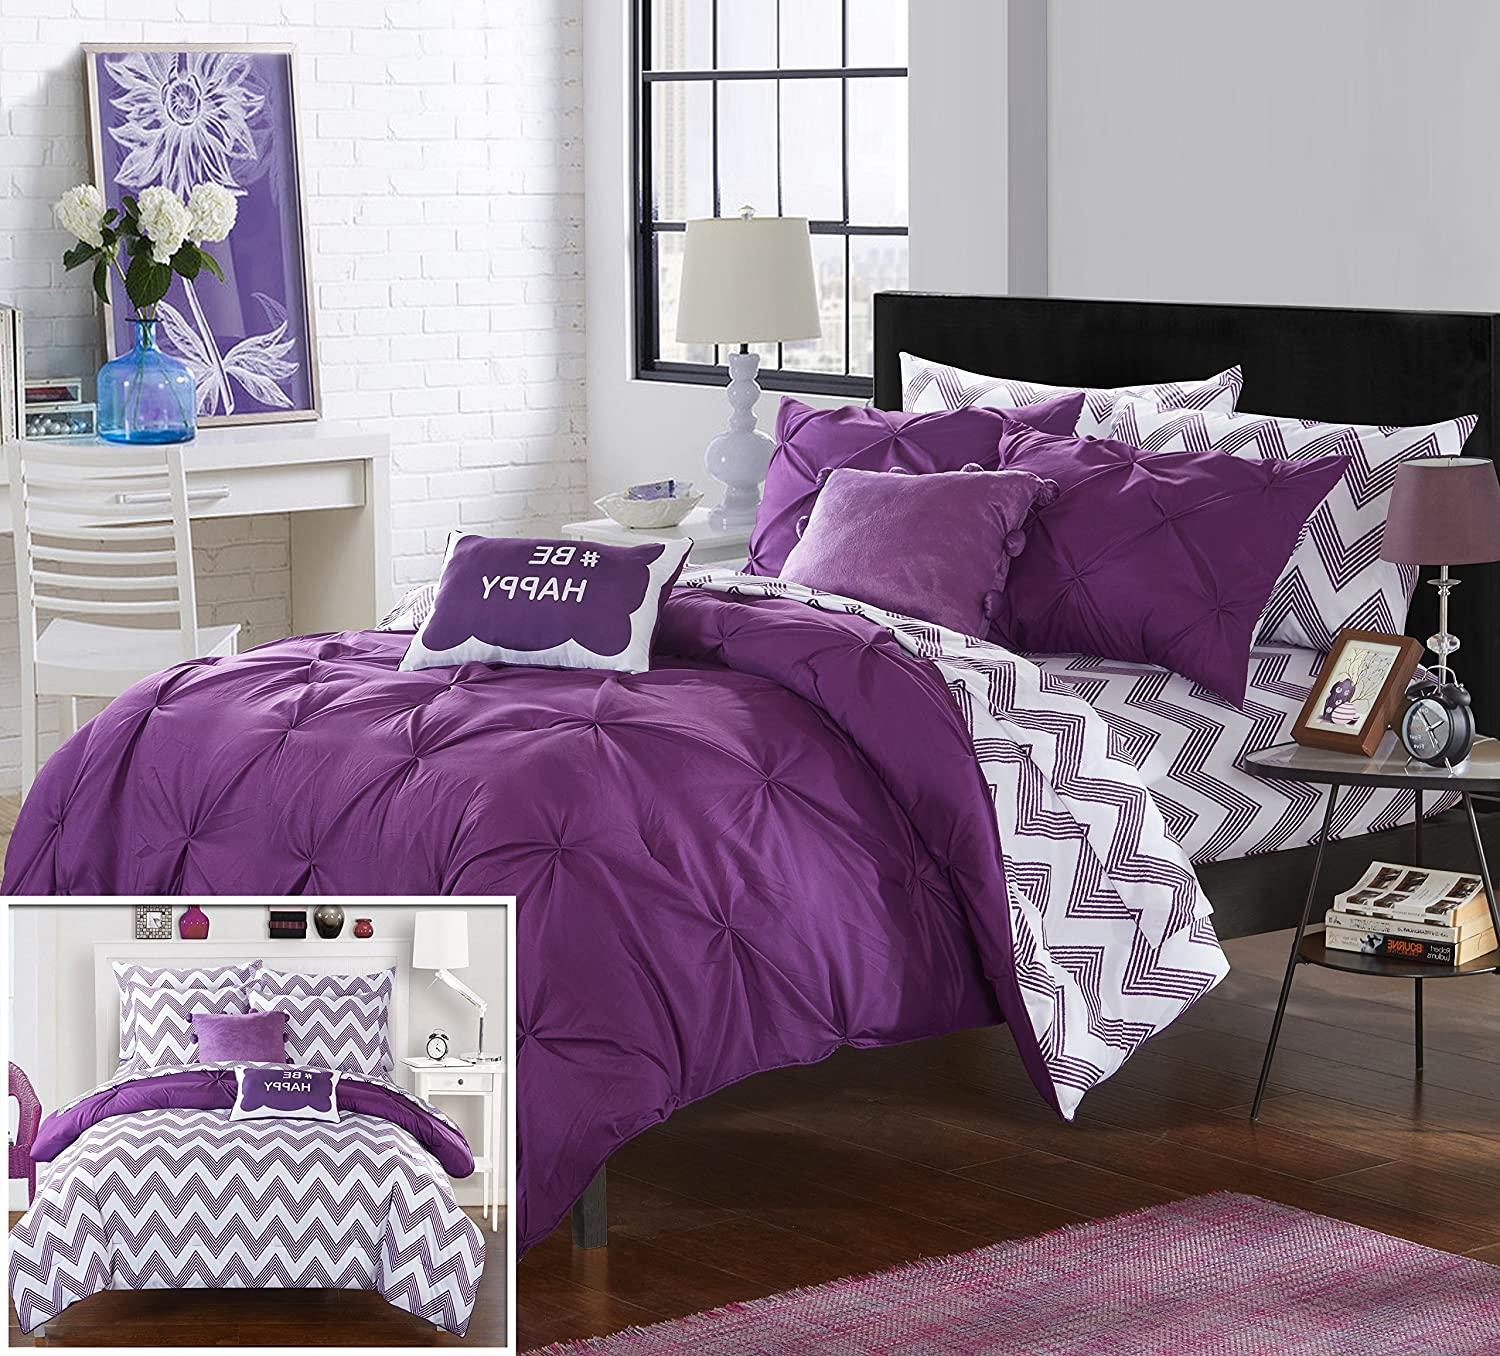 Chic Home 9 Piece Heathville Pinch Pleated Chevron Print REVERSIBLE, Full Bed In a Bag Comforter Set